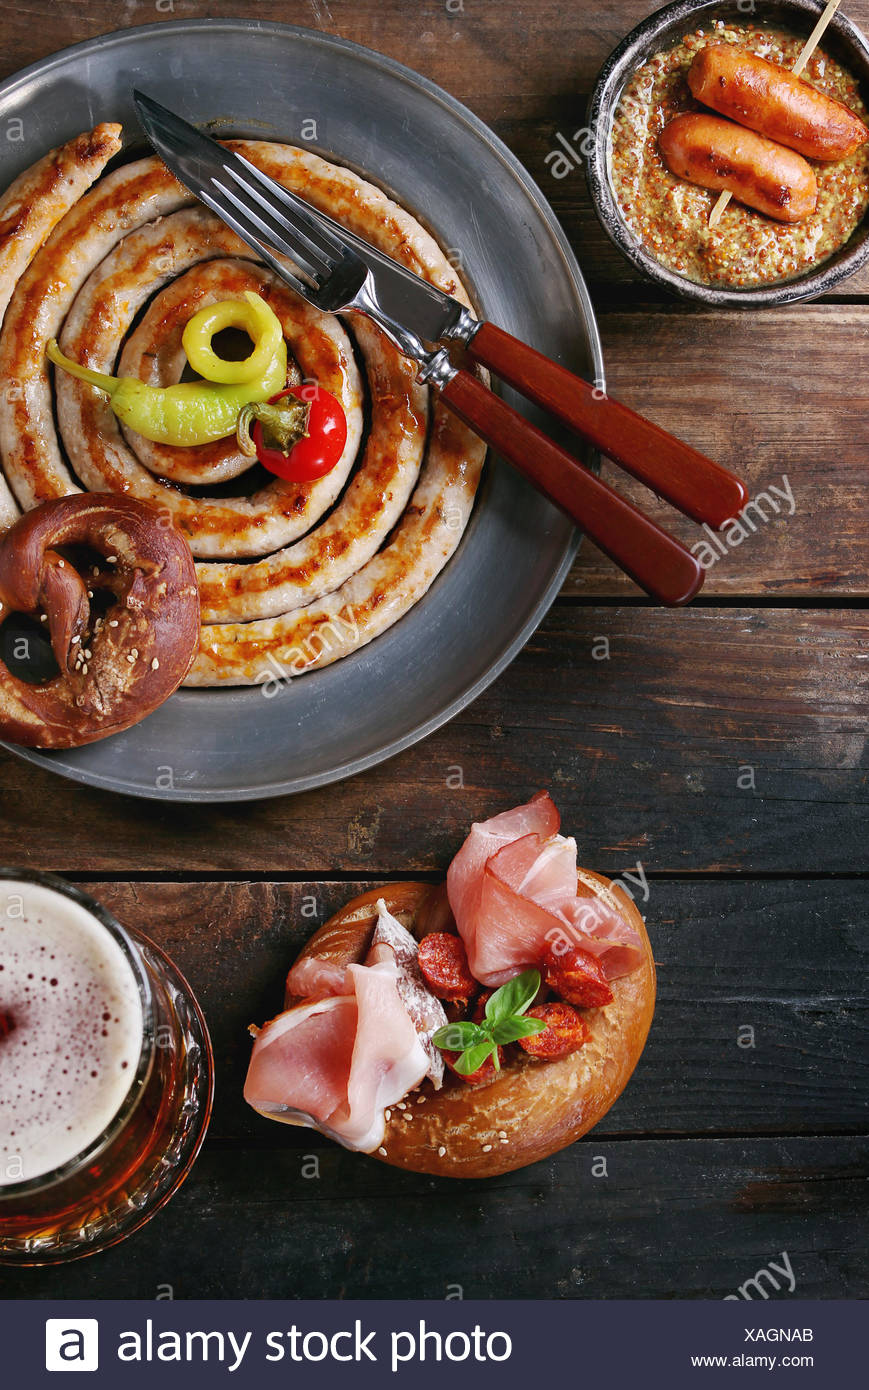 Big spiral fried sausage, meat snacks wienerwurst, ham, marinated chili peppers served in salted pretzels and plate with glass of lager beer and musta Stock Photo